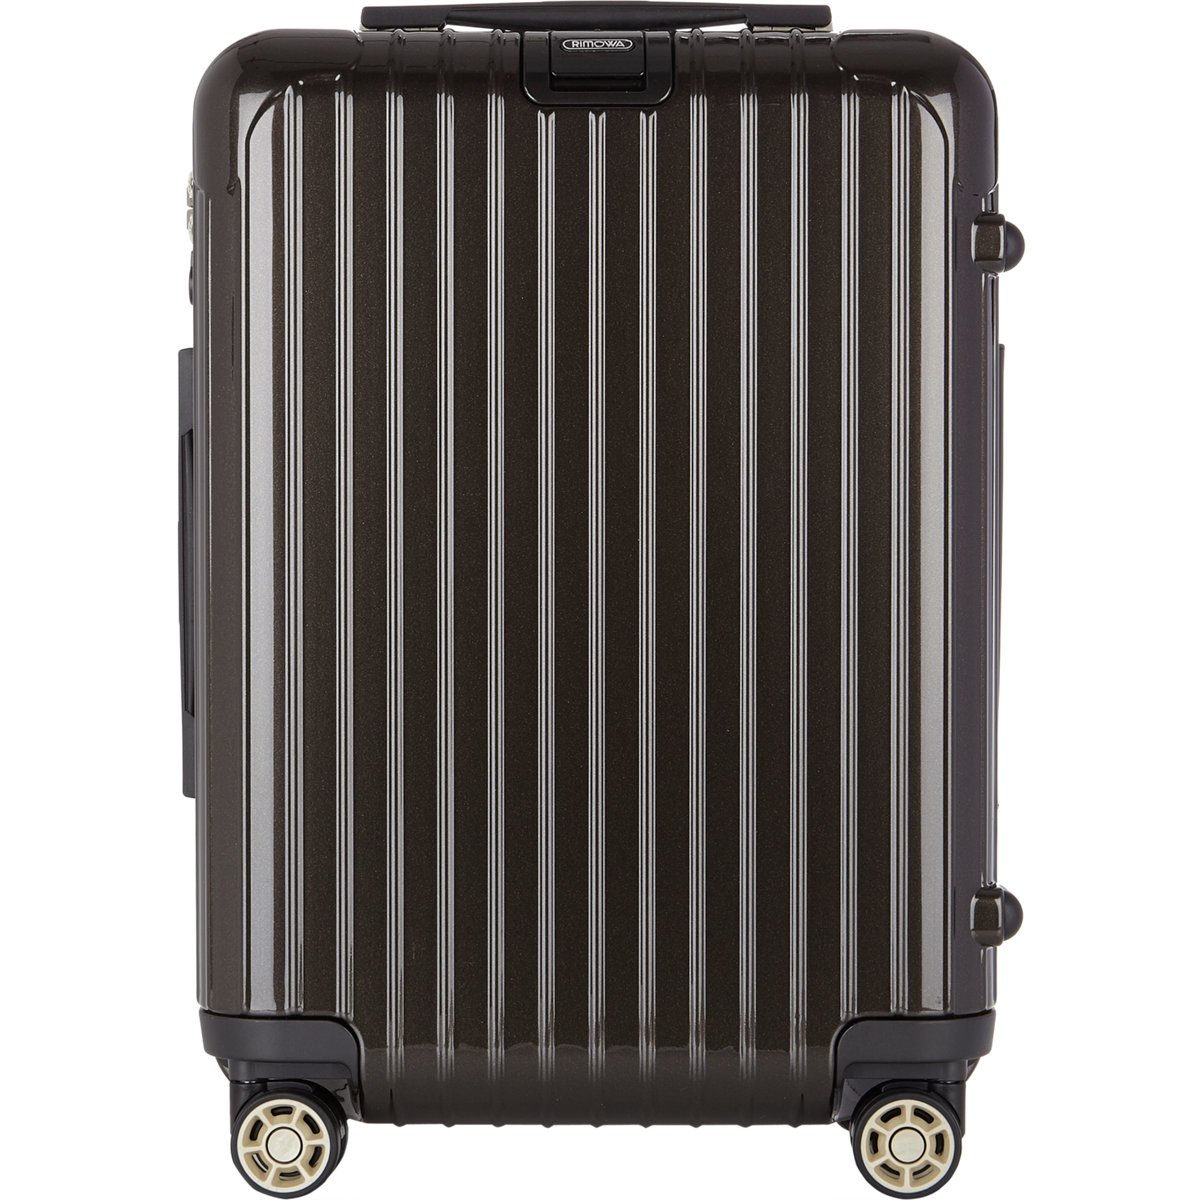 rimowa salsa deluxe 22 cabin multiwheel iata suitcase in gray for men lyst. Black Bedroom Furniture Sets. Home Design Ideas